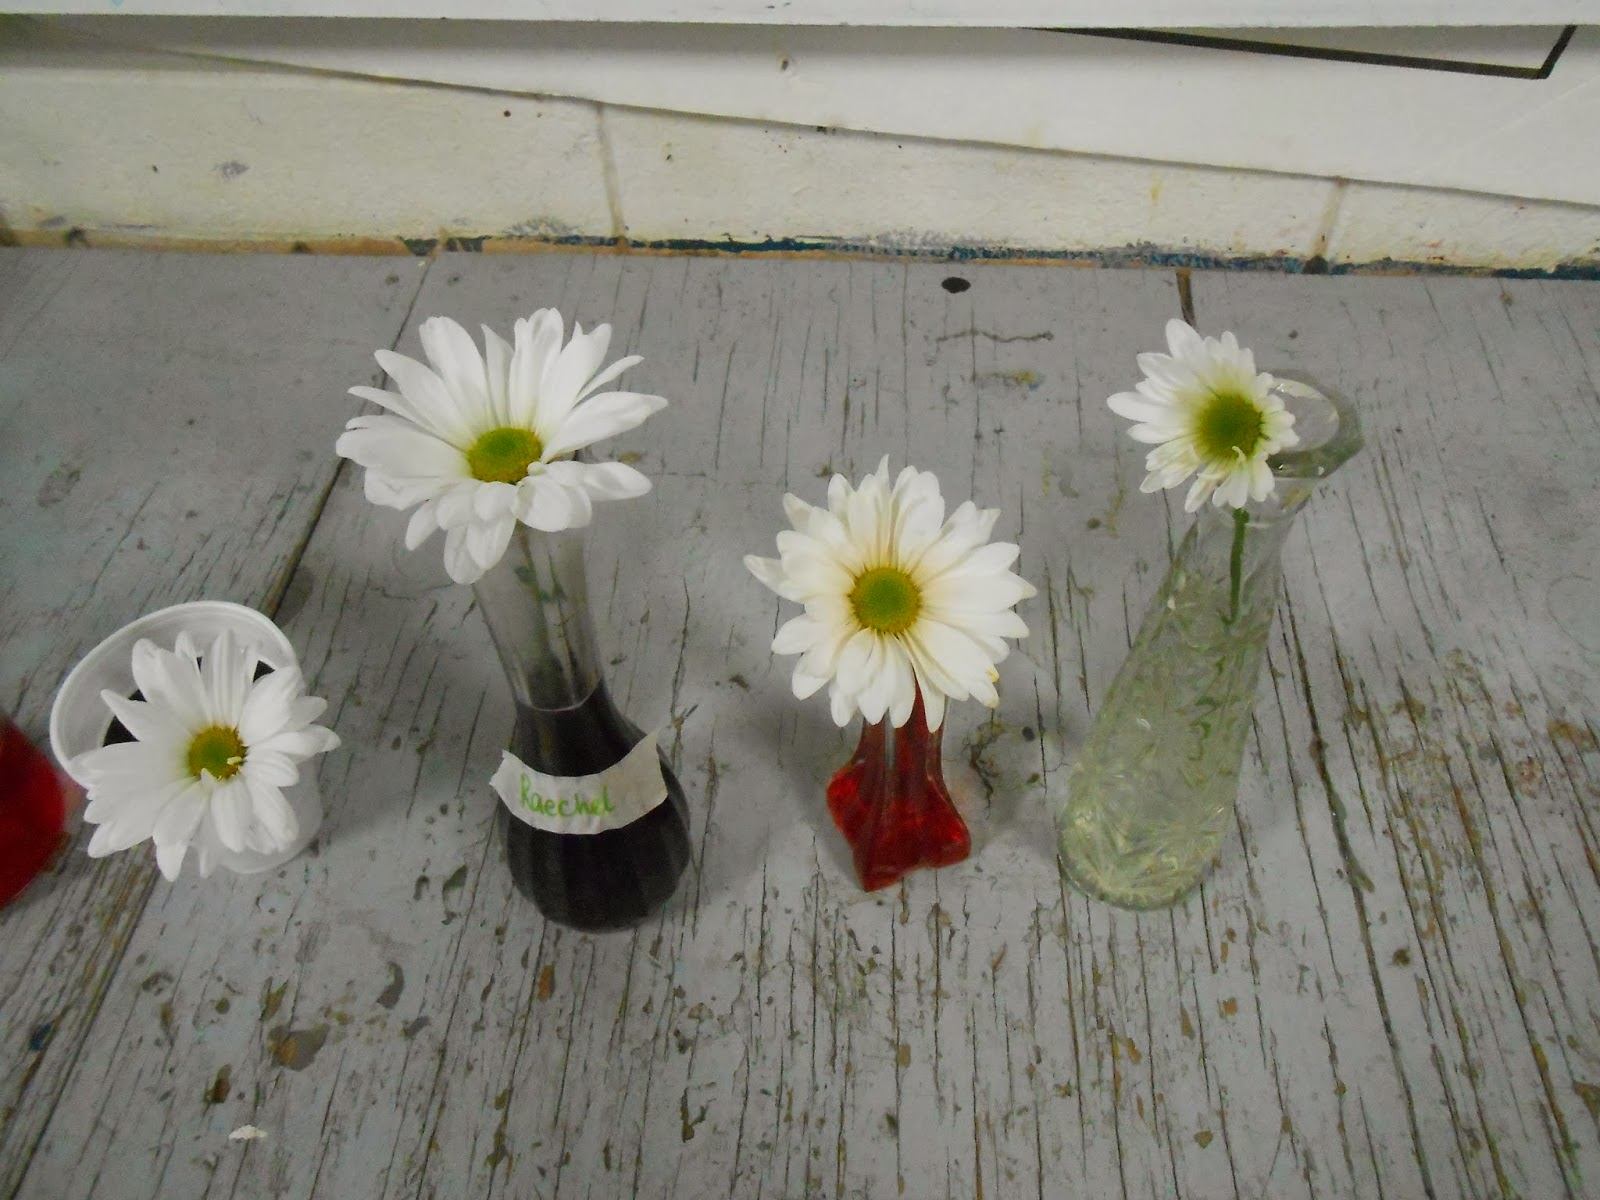 Elg Agriculture Classes Crazy Daisy Experiment